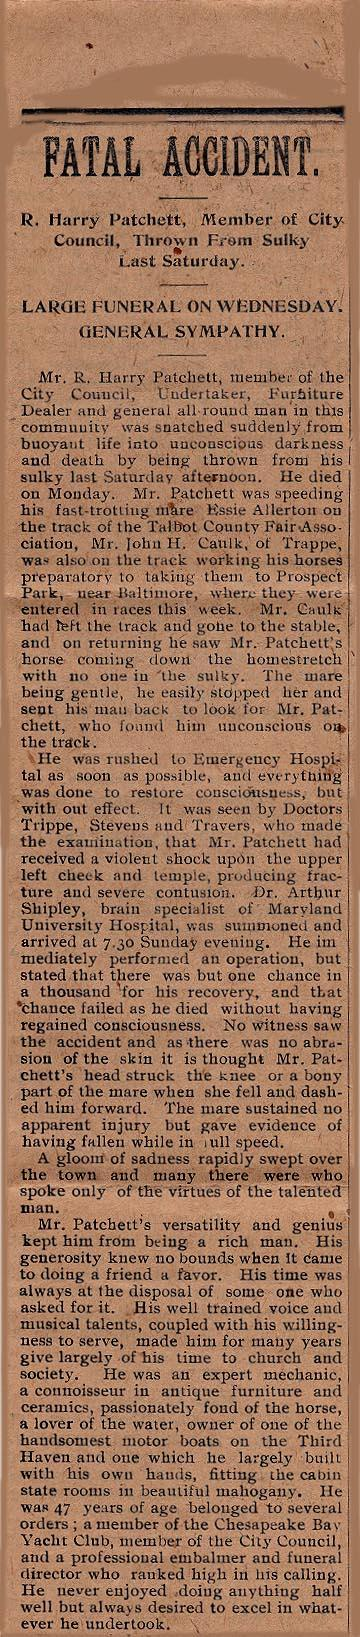 Newsclipping of accident of R. Harry Patchett